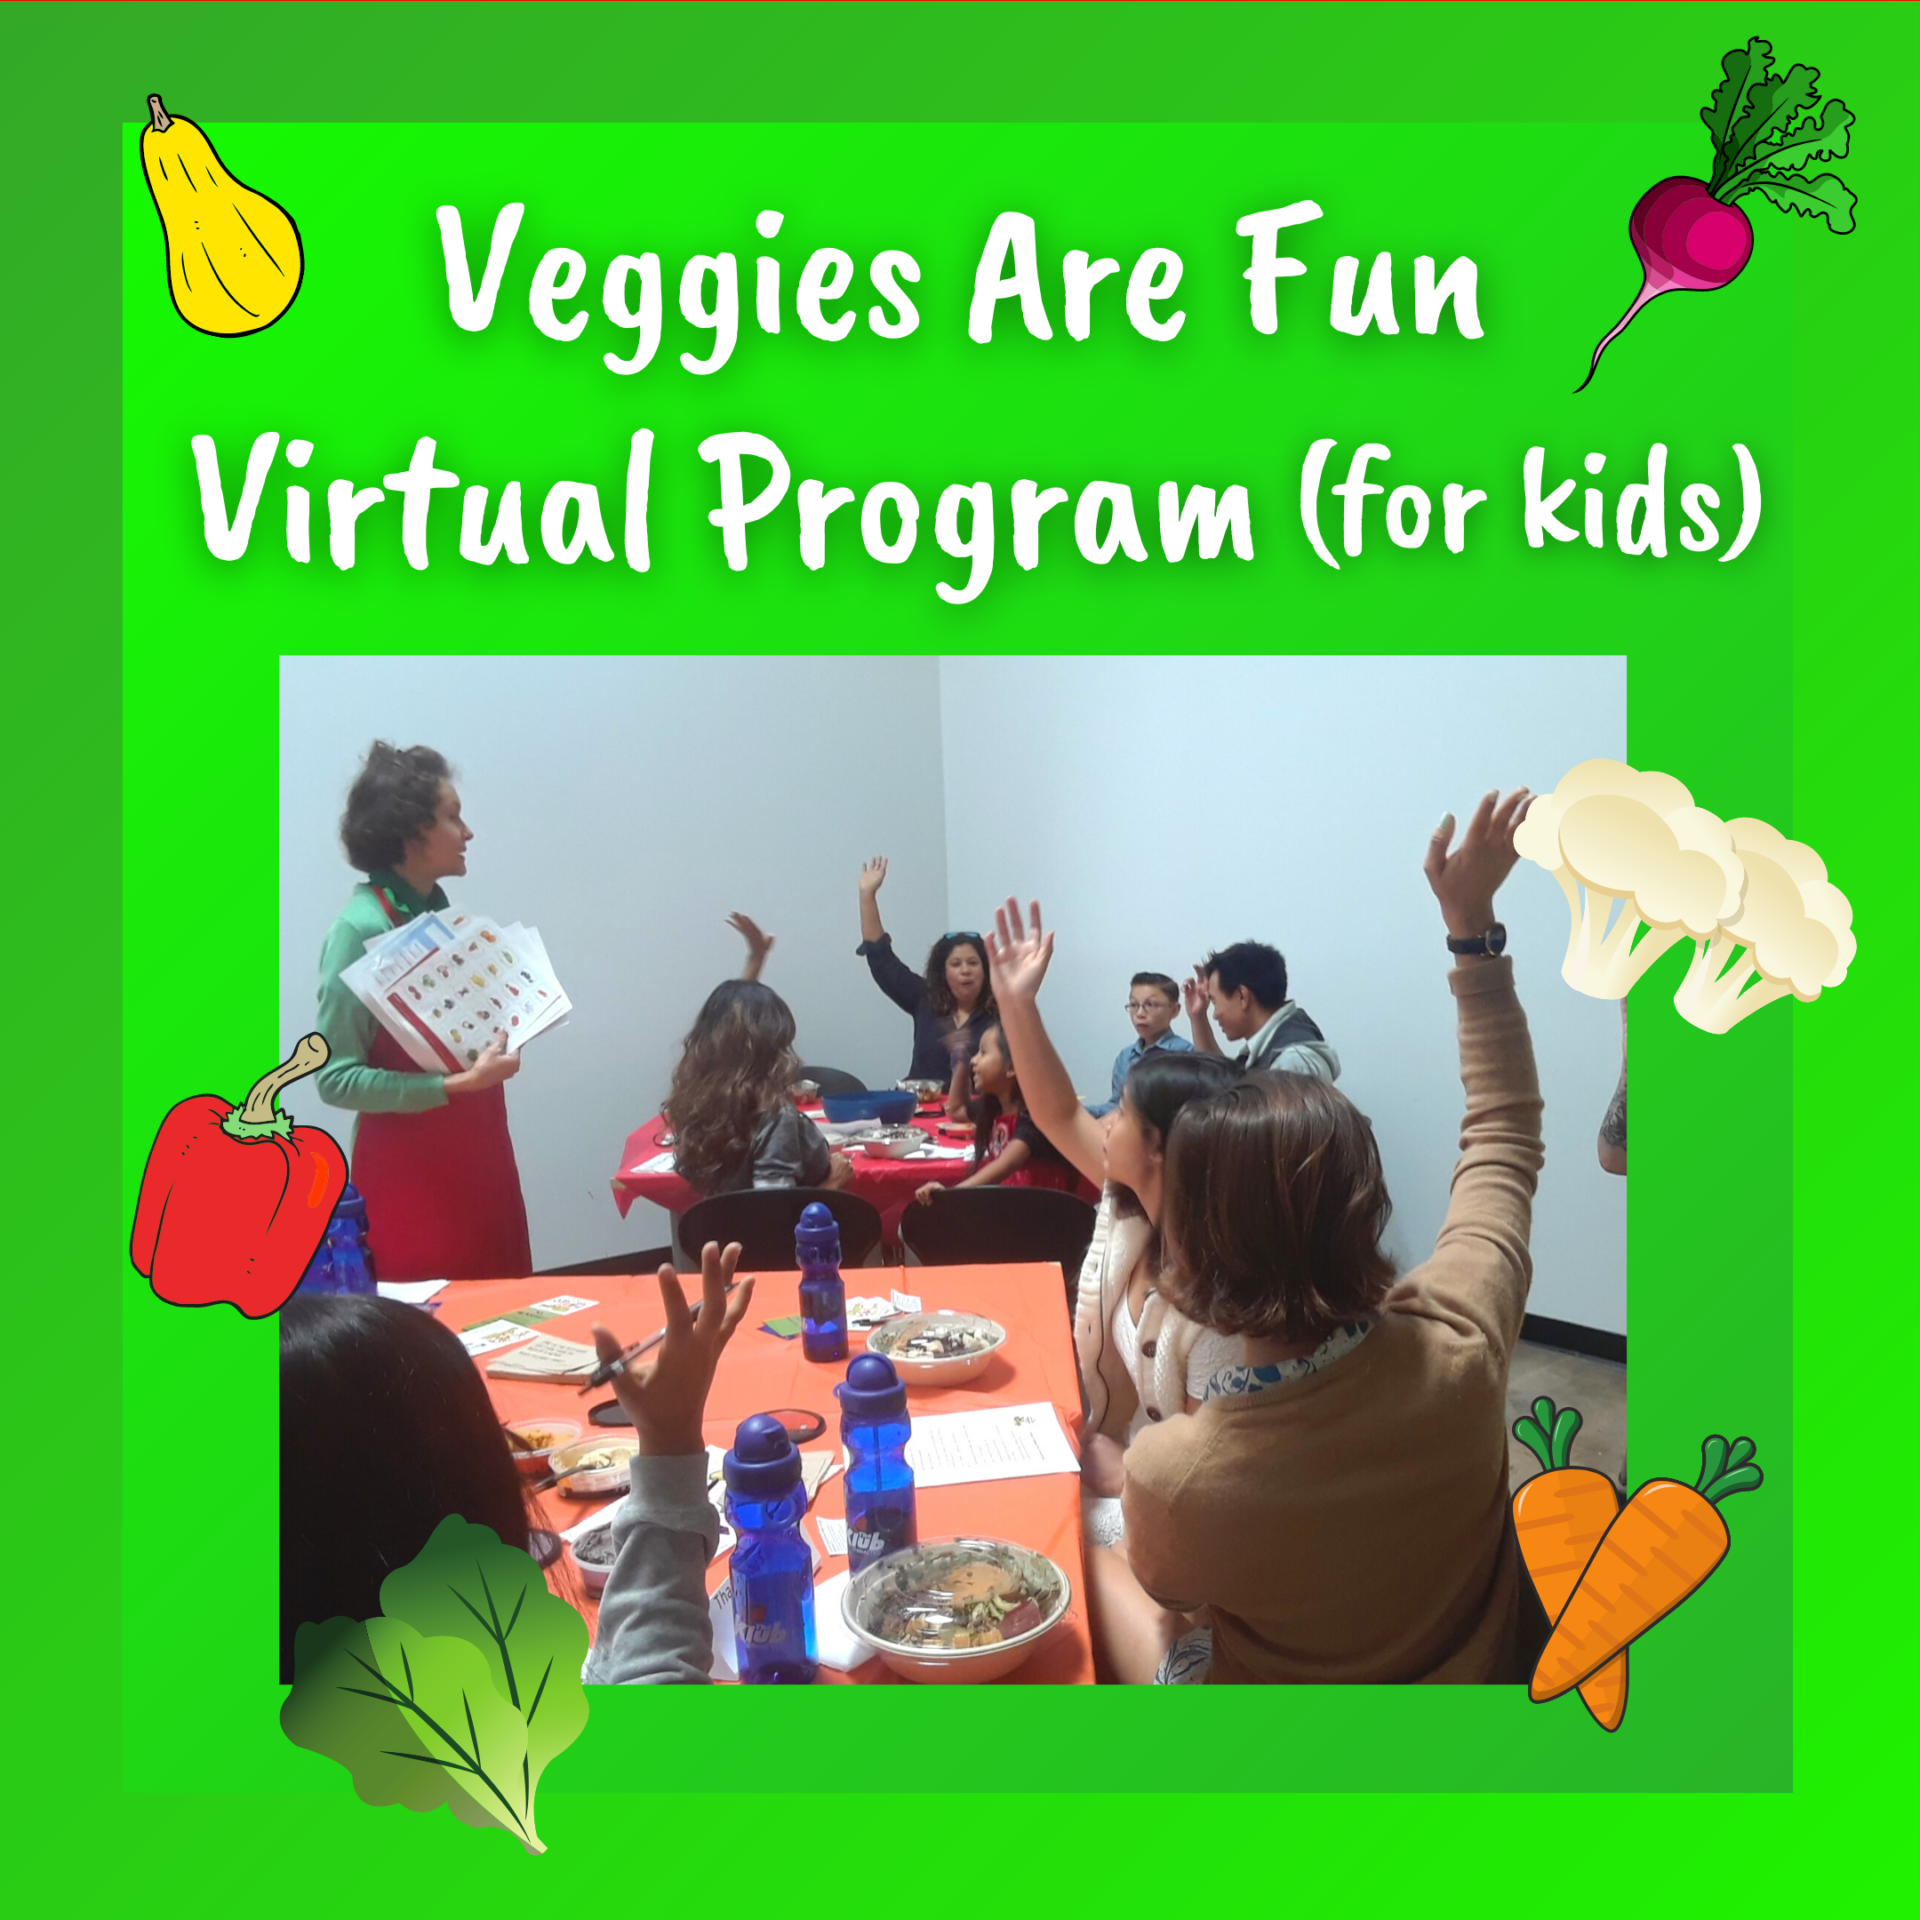 Veggies Are Fun Virtual Program (for kids). Photo of Mo, the Morselist teaching a group of kids and adults.